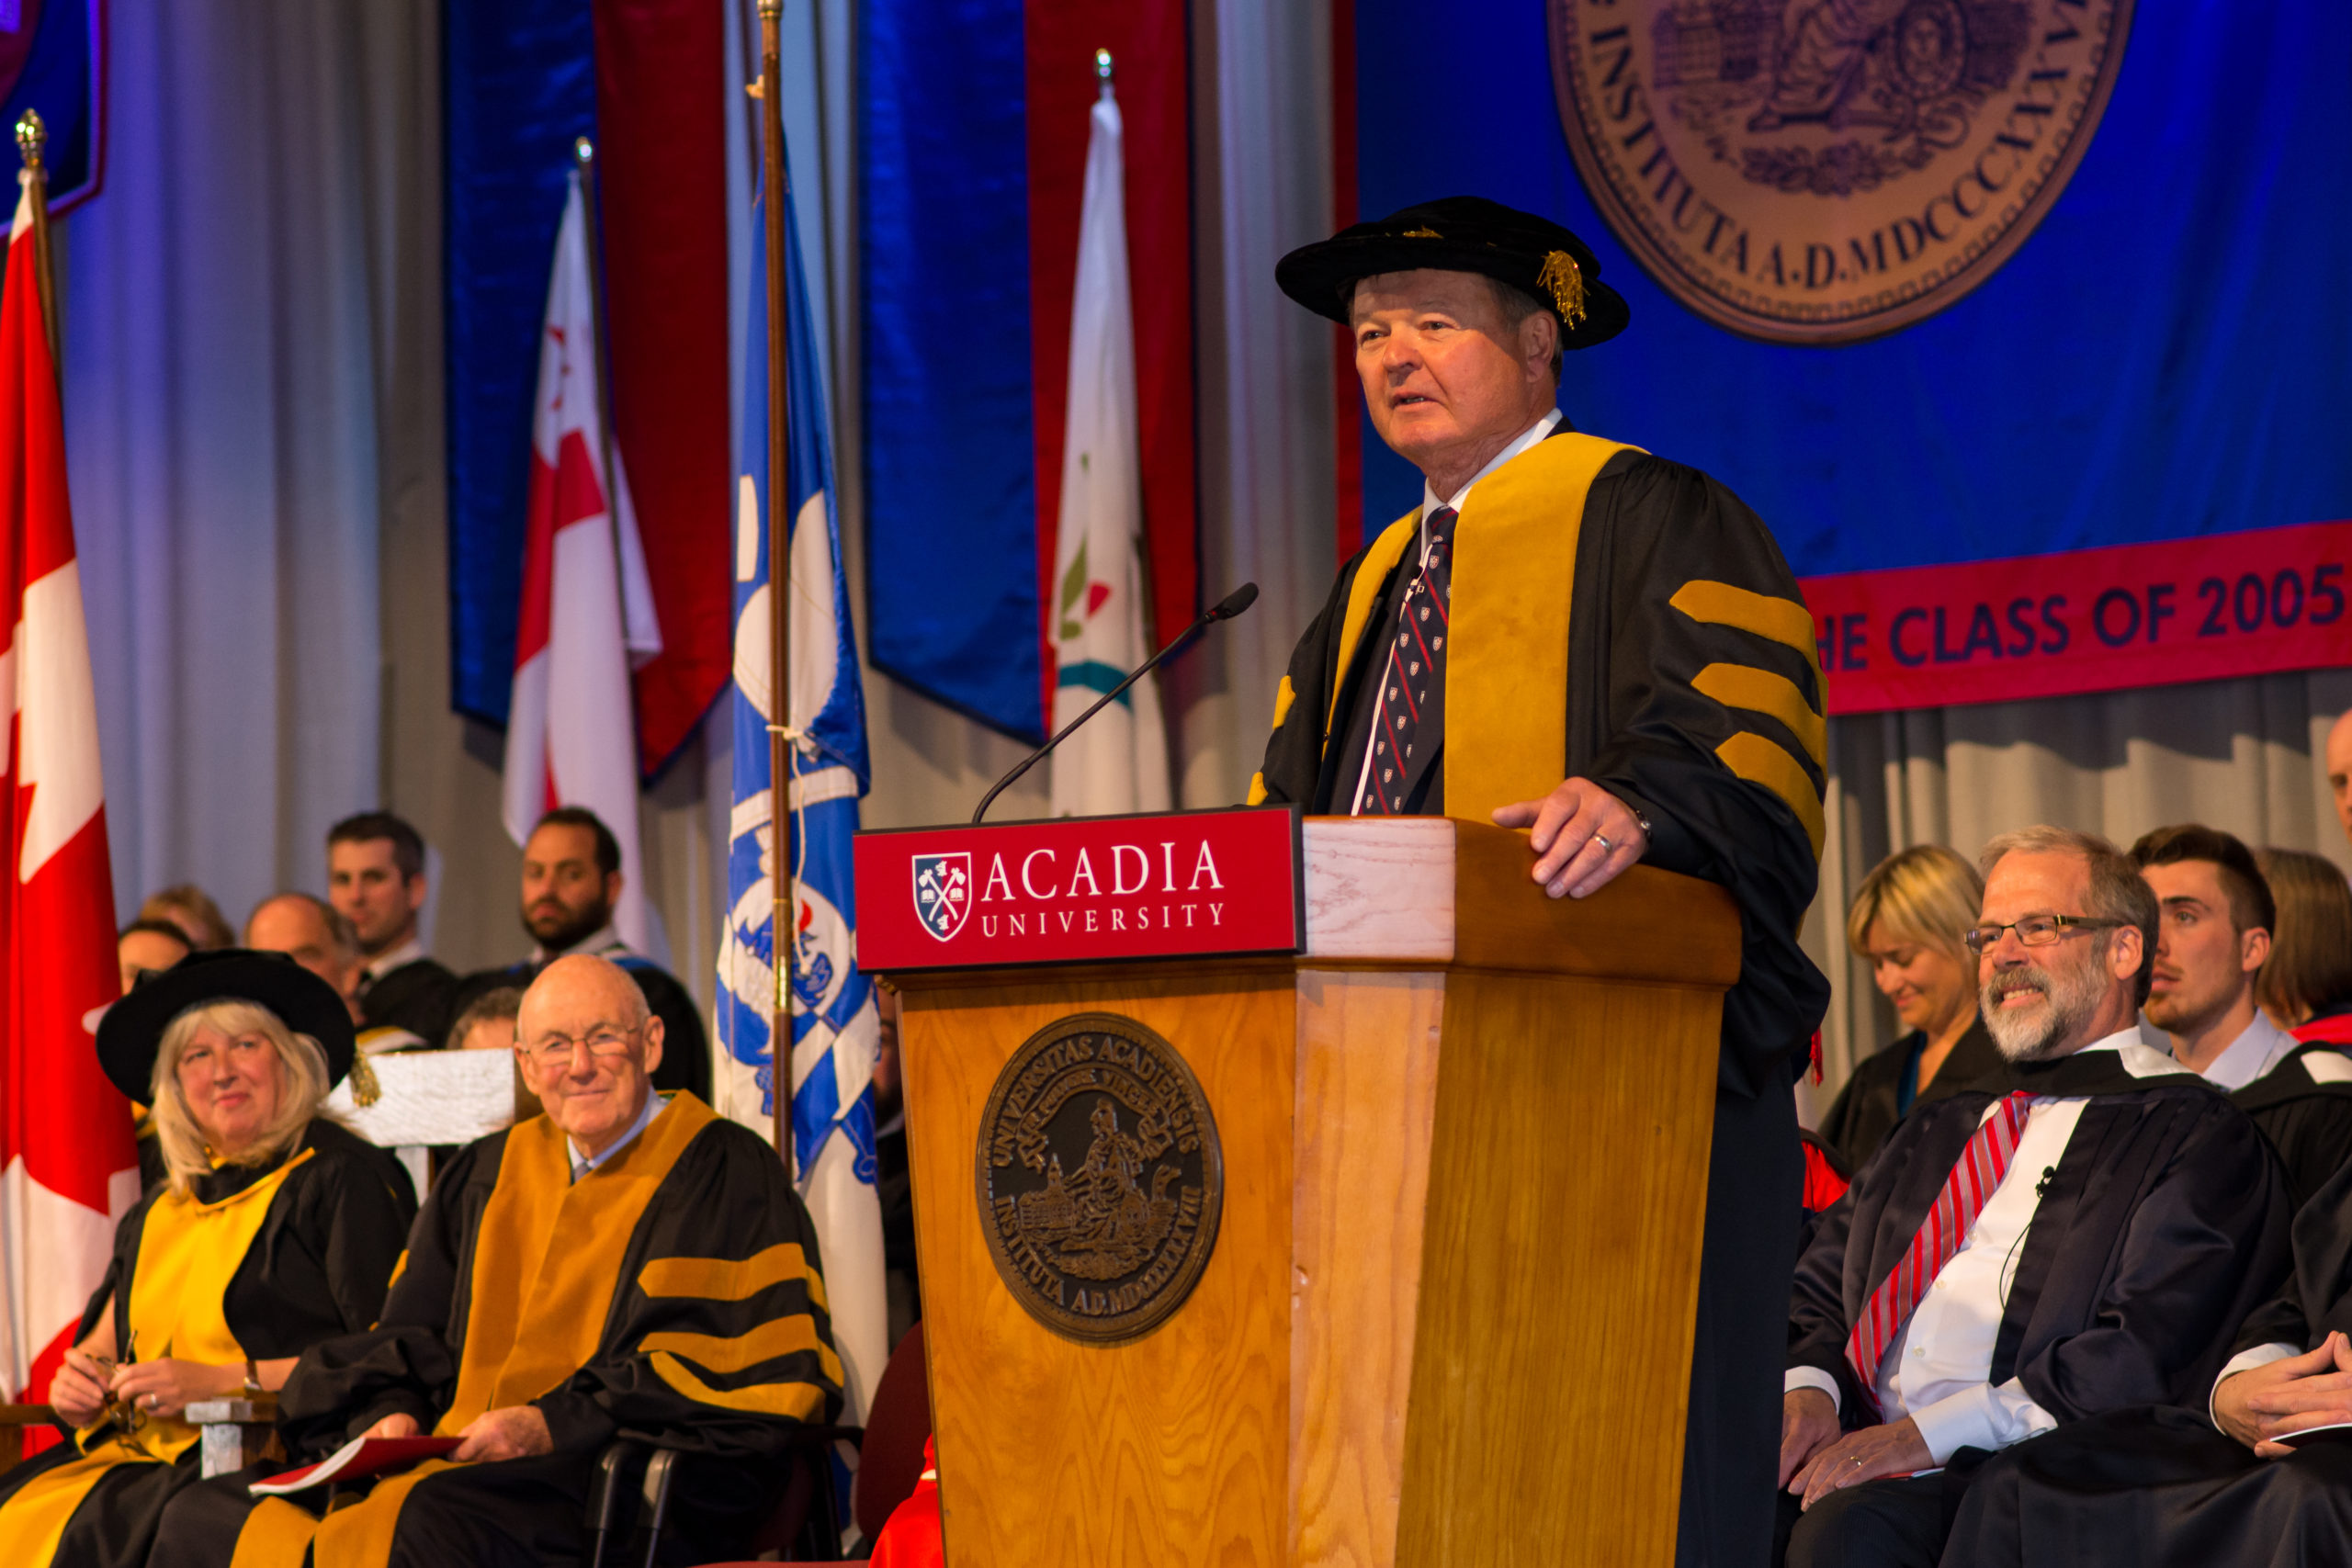 Thumbnail Image for Chancellor Bruce Galloway ('68) shares his congratulations with future alumni